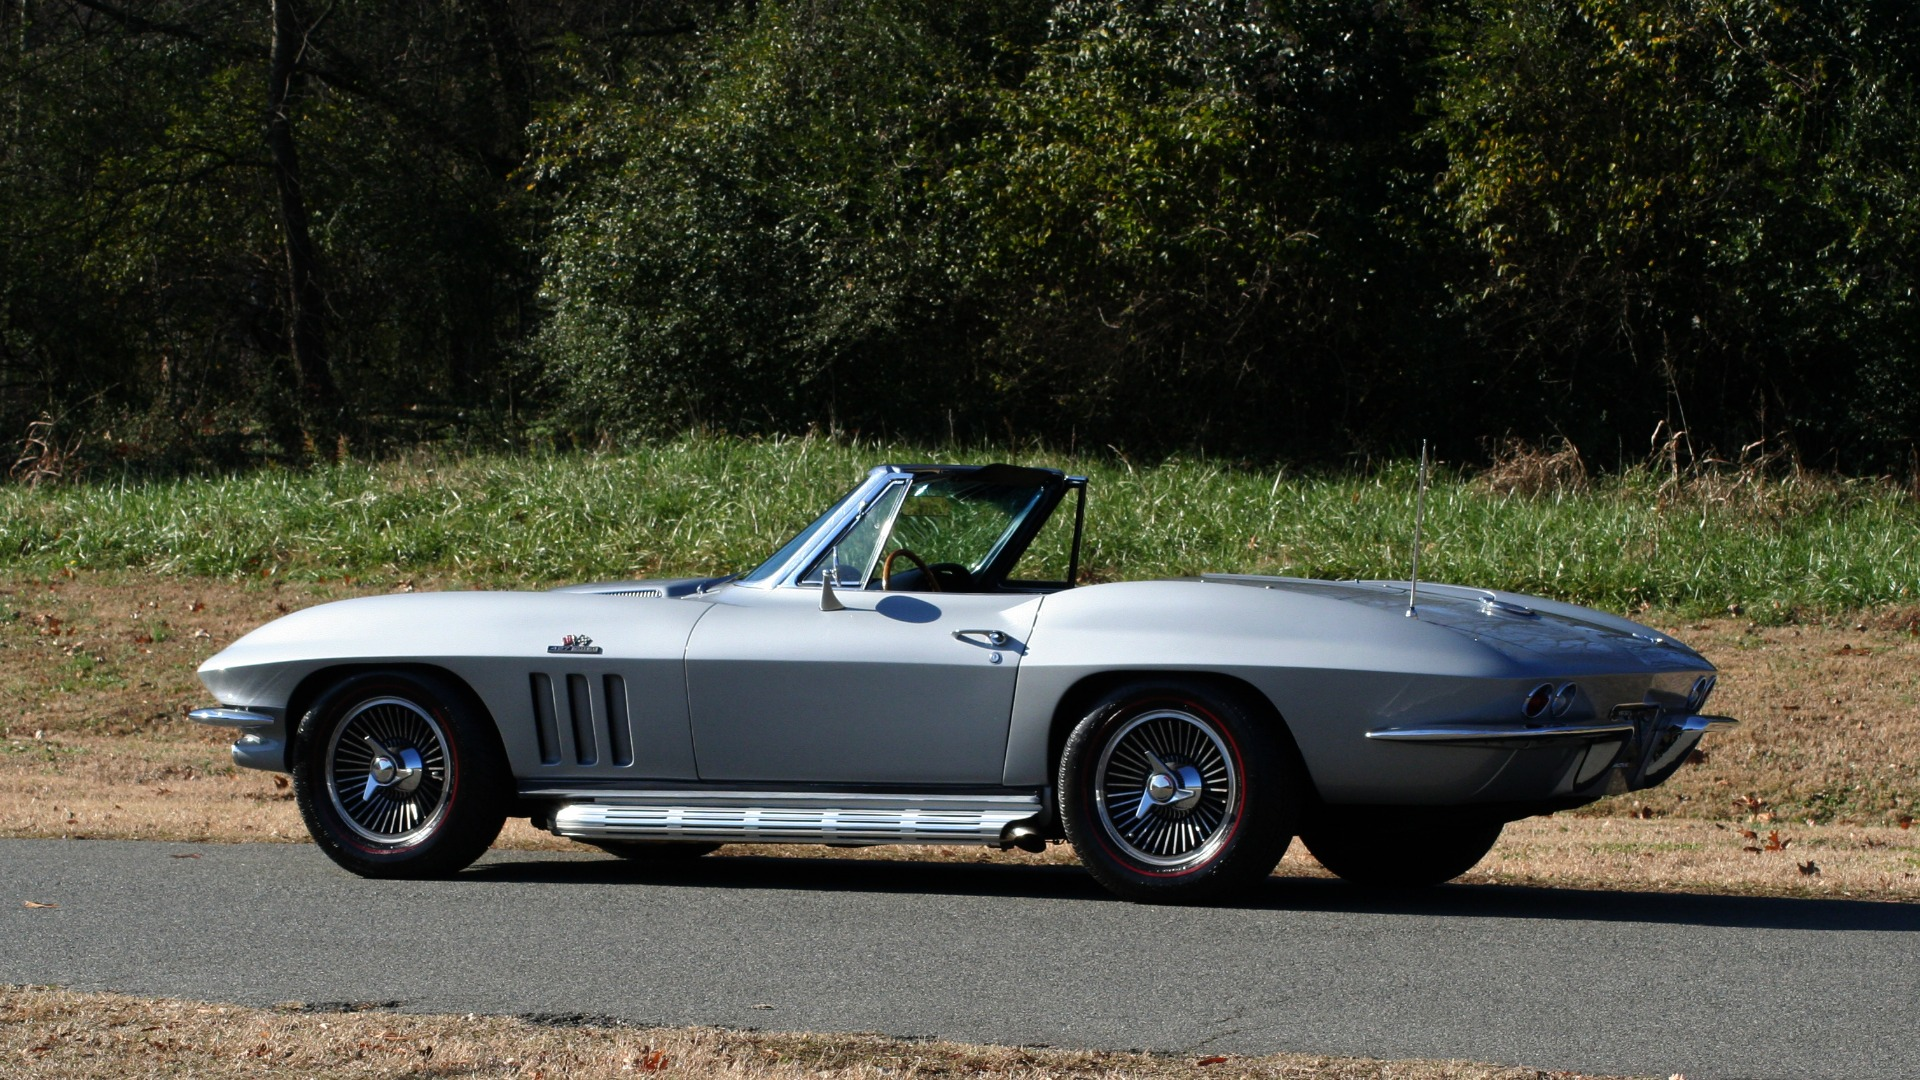 Used 1966 Chevrolet CORVETTE STINGRAY CONVERTIBLE 427 / 4-SPD / NUMBER MATCHING for sale Sold at Formula Imports in Charlotte NC 28227 4